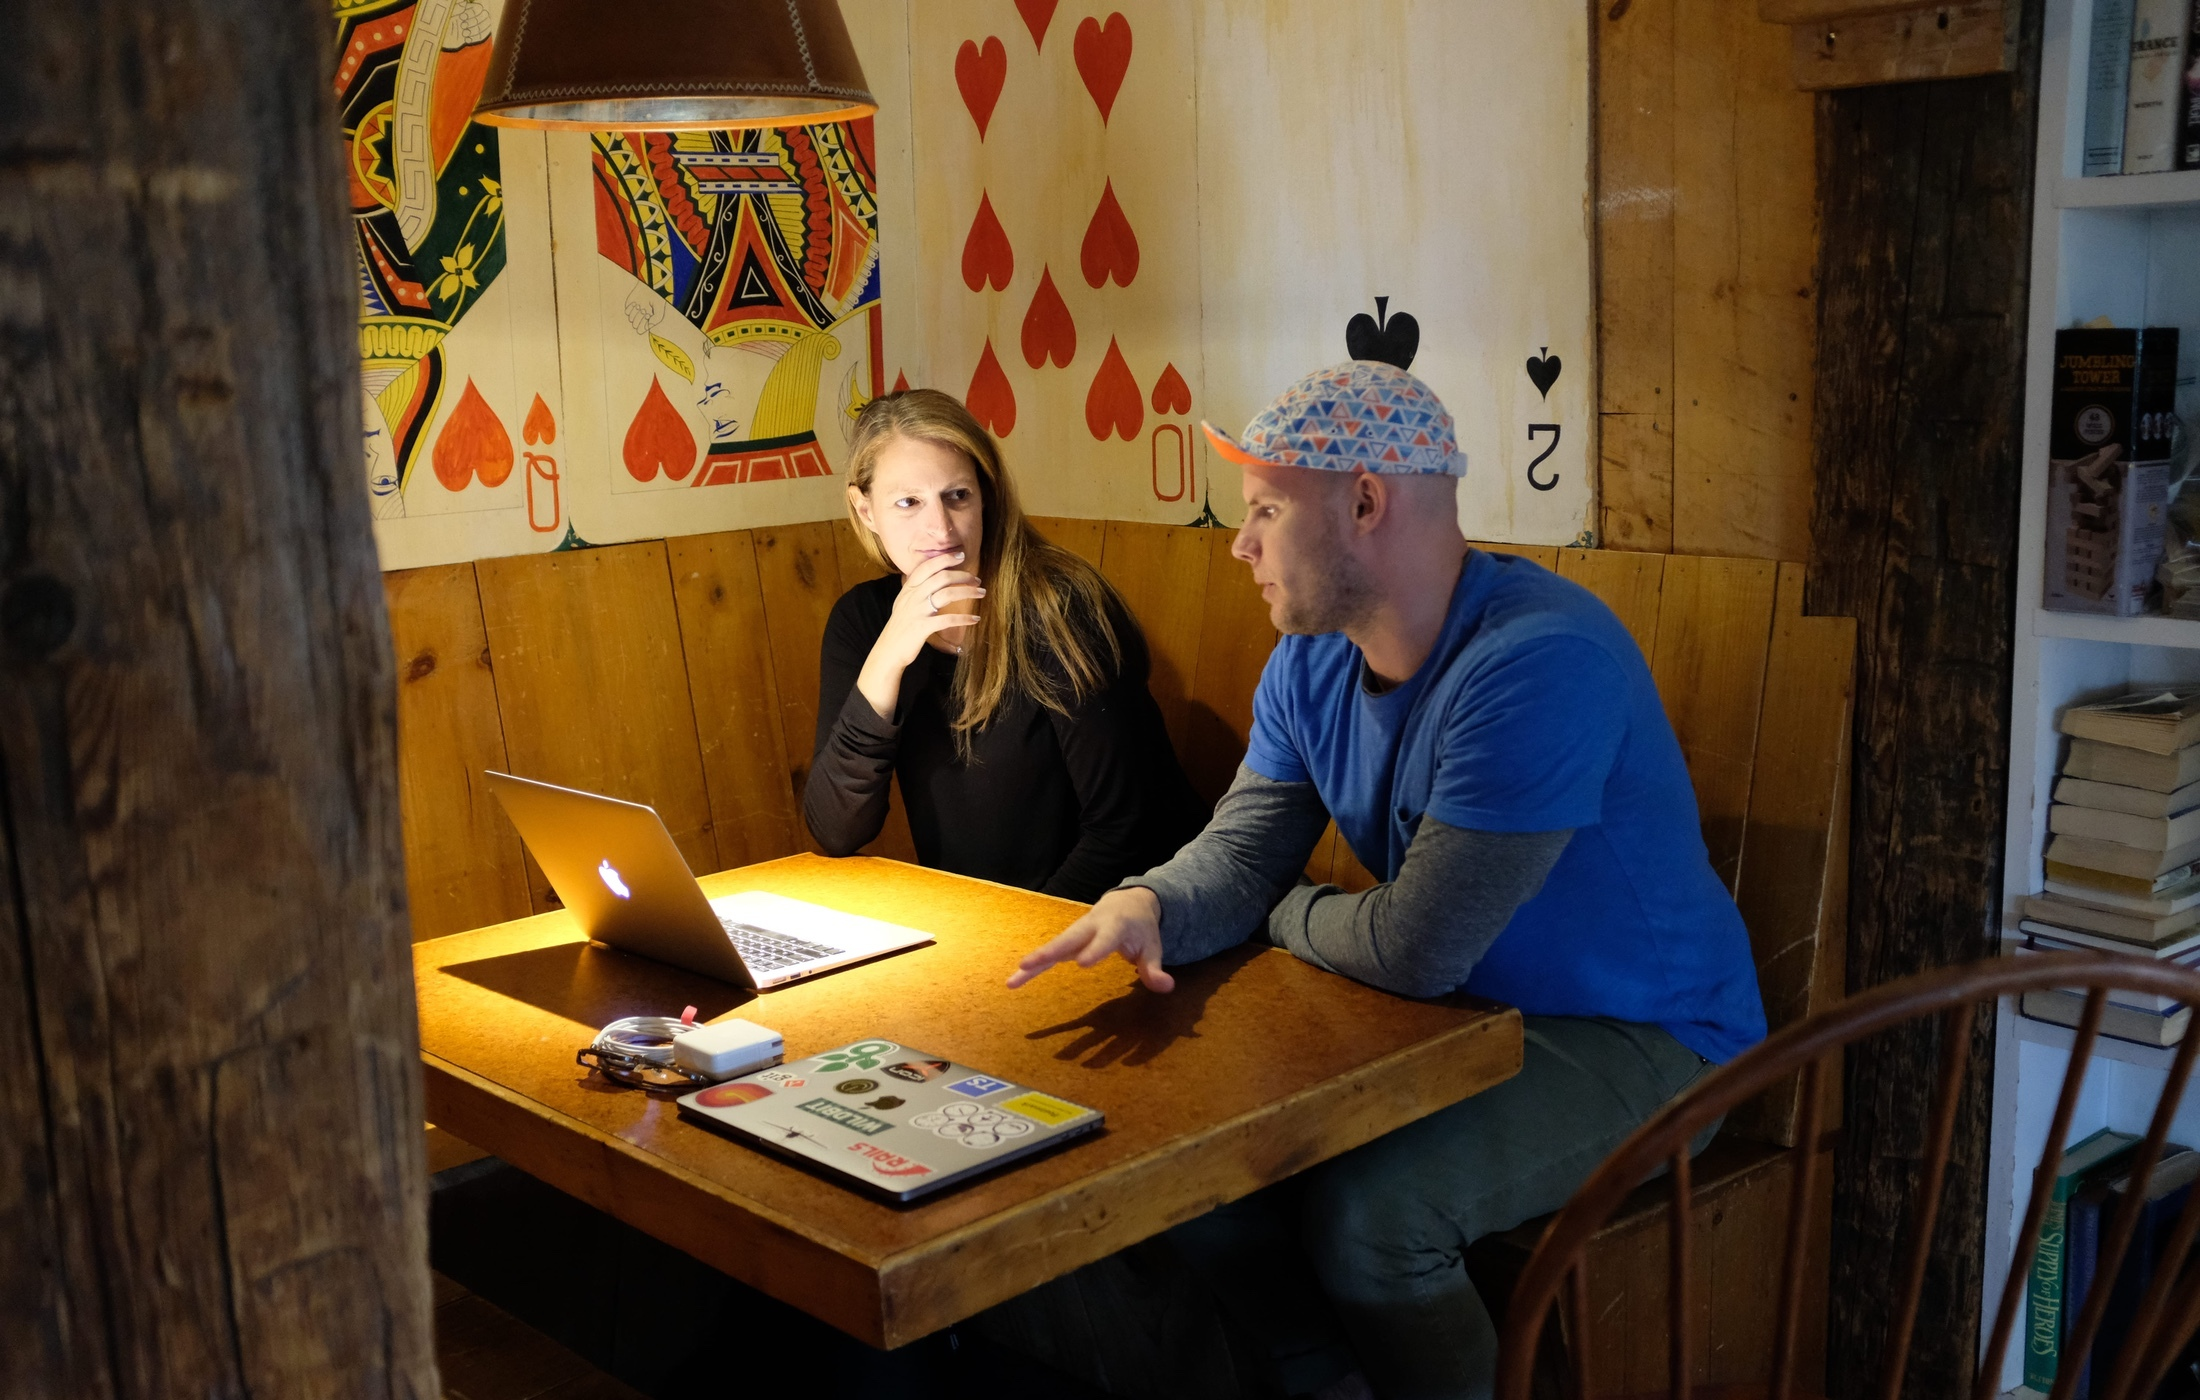 Two Wildbit team members discussing plans.